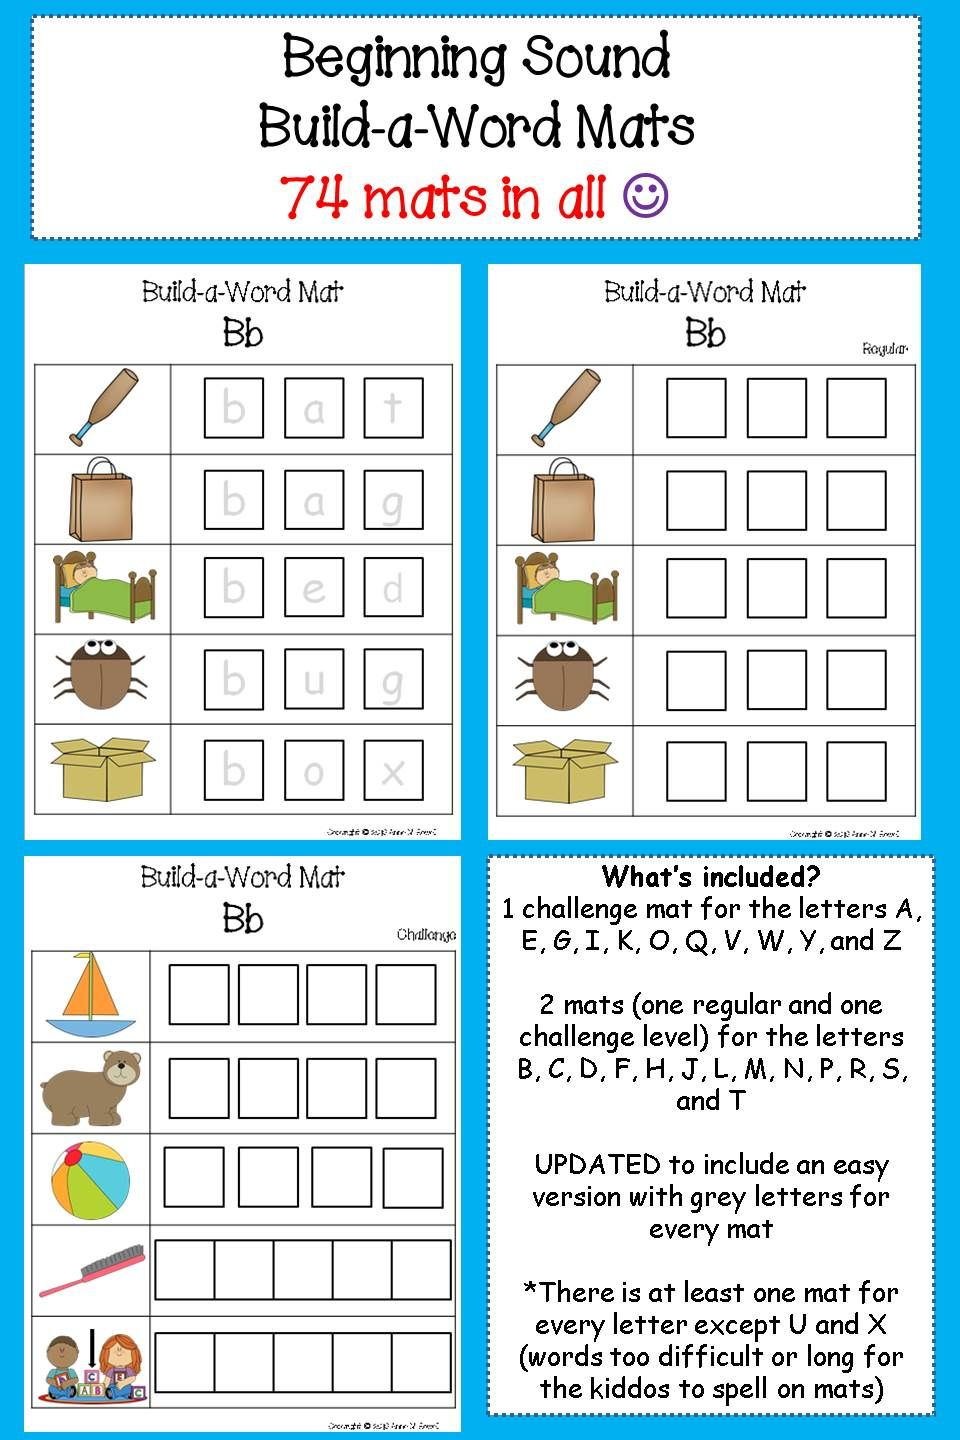 Beginning Sound Activity Letter Sounds BuildaWord Mats